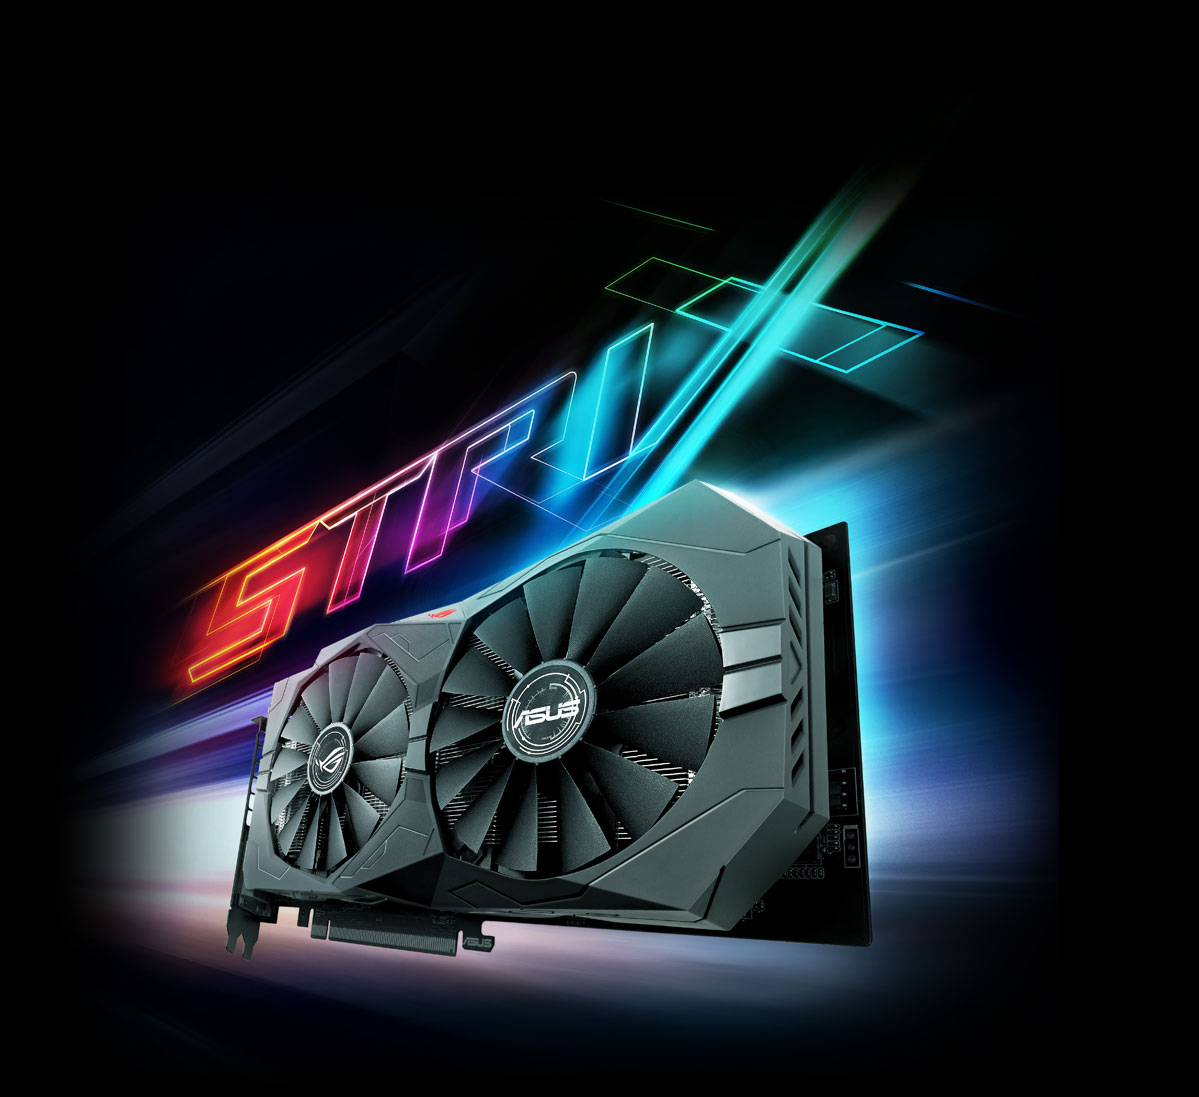 ROG-STRIX-RX570-O4G-GAMING | ROG - Republic Of Gamers | ASUS USA